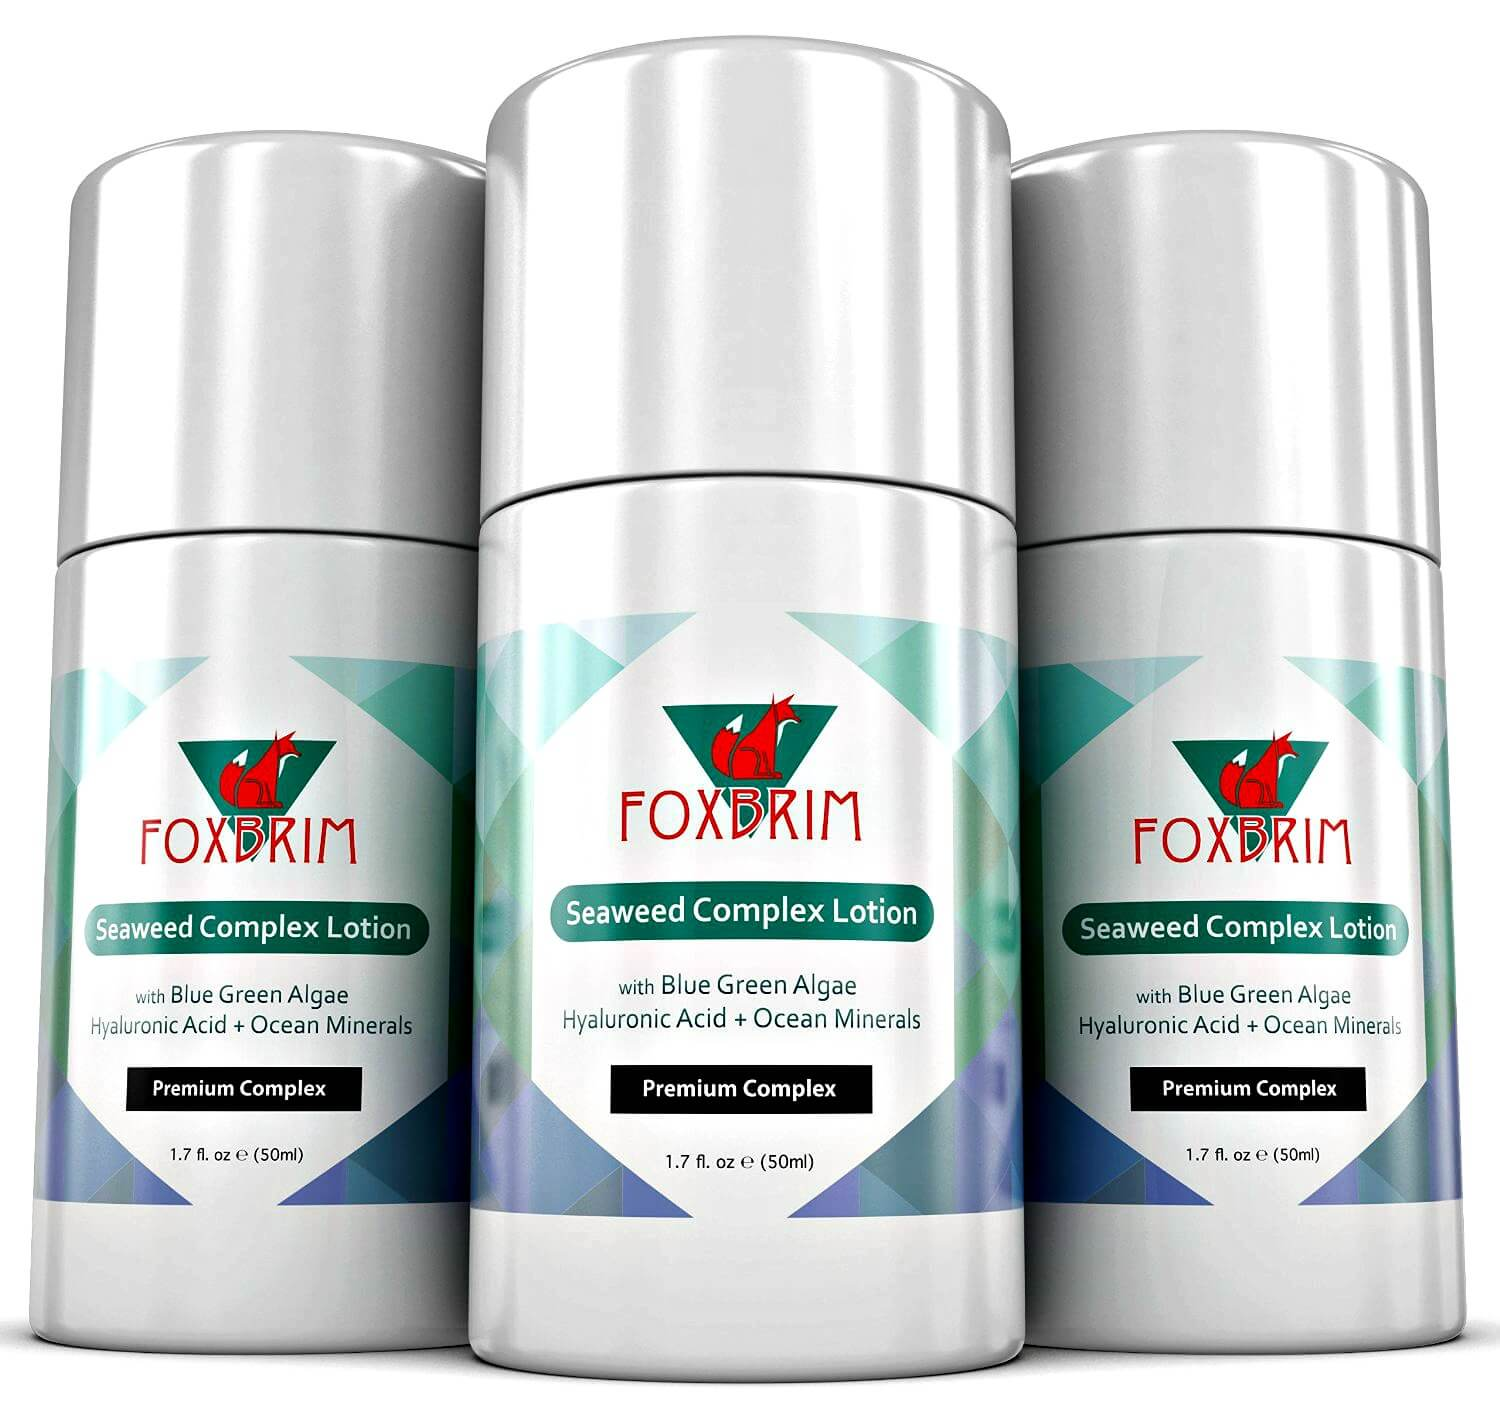 Foxbrim Seaweed Complex Lotion Review